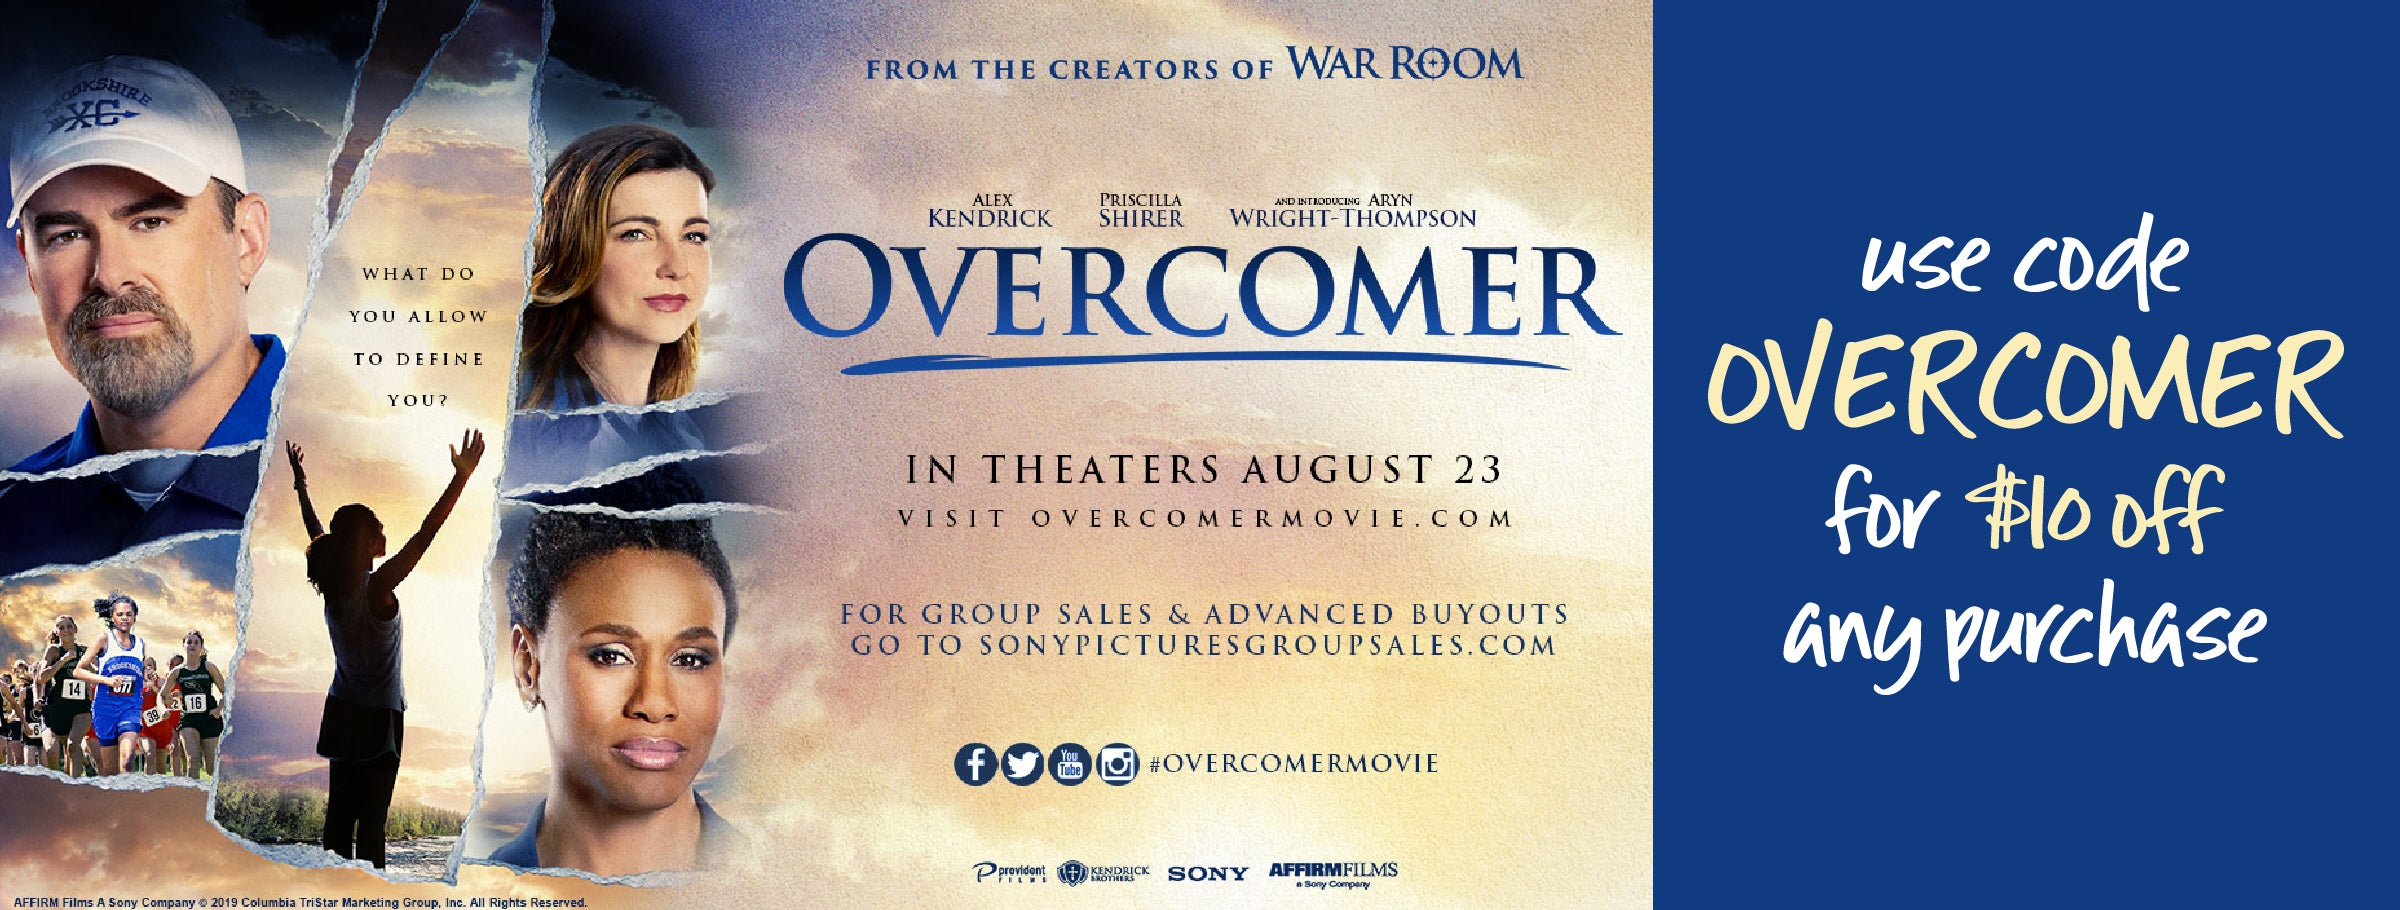 $10 off any purchase with code OVERCOMER